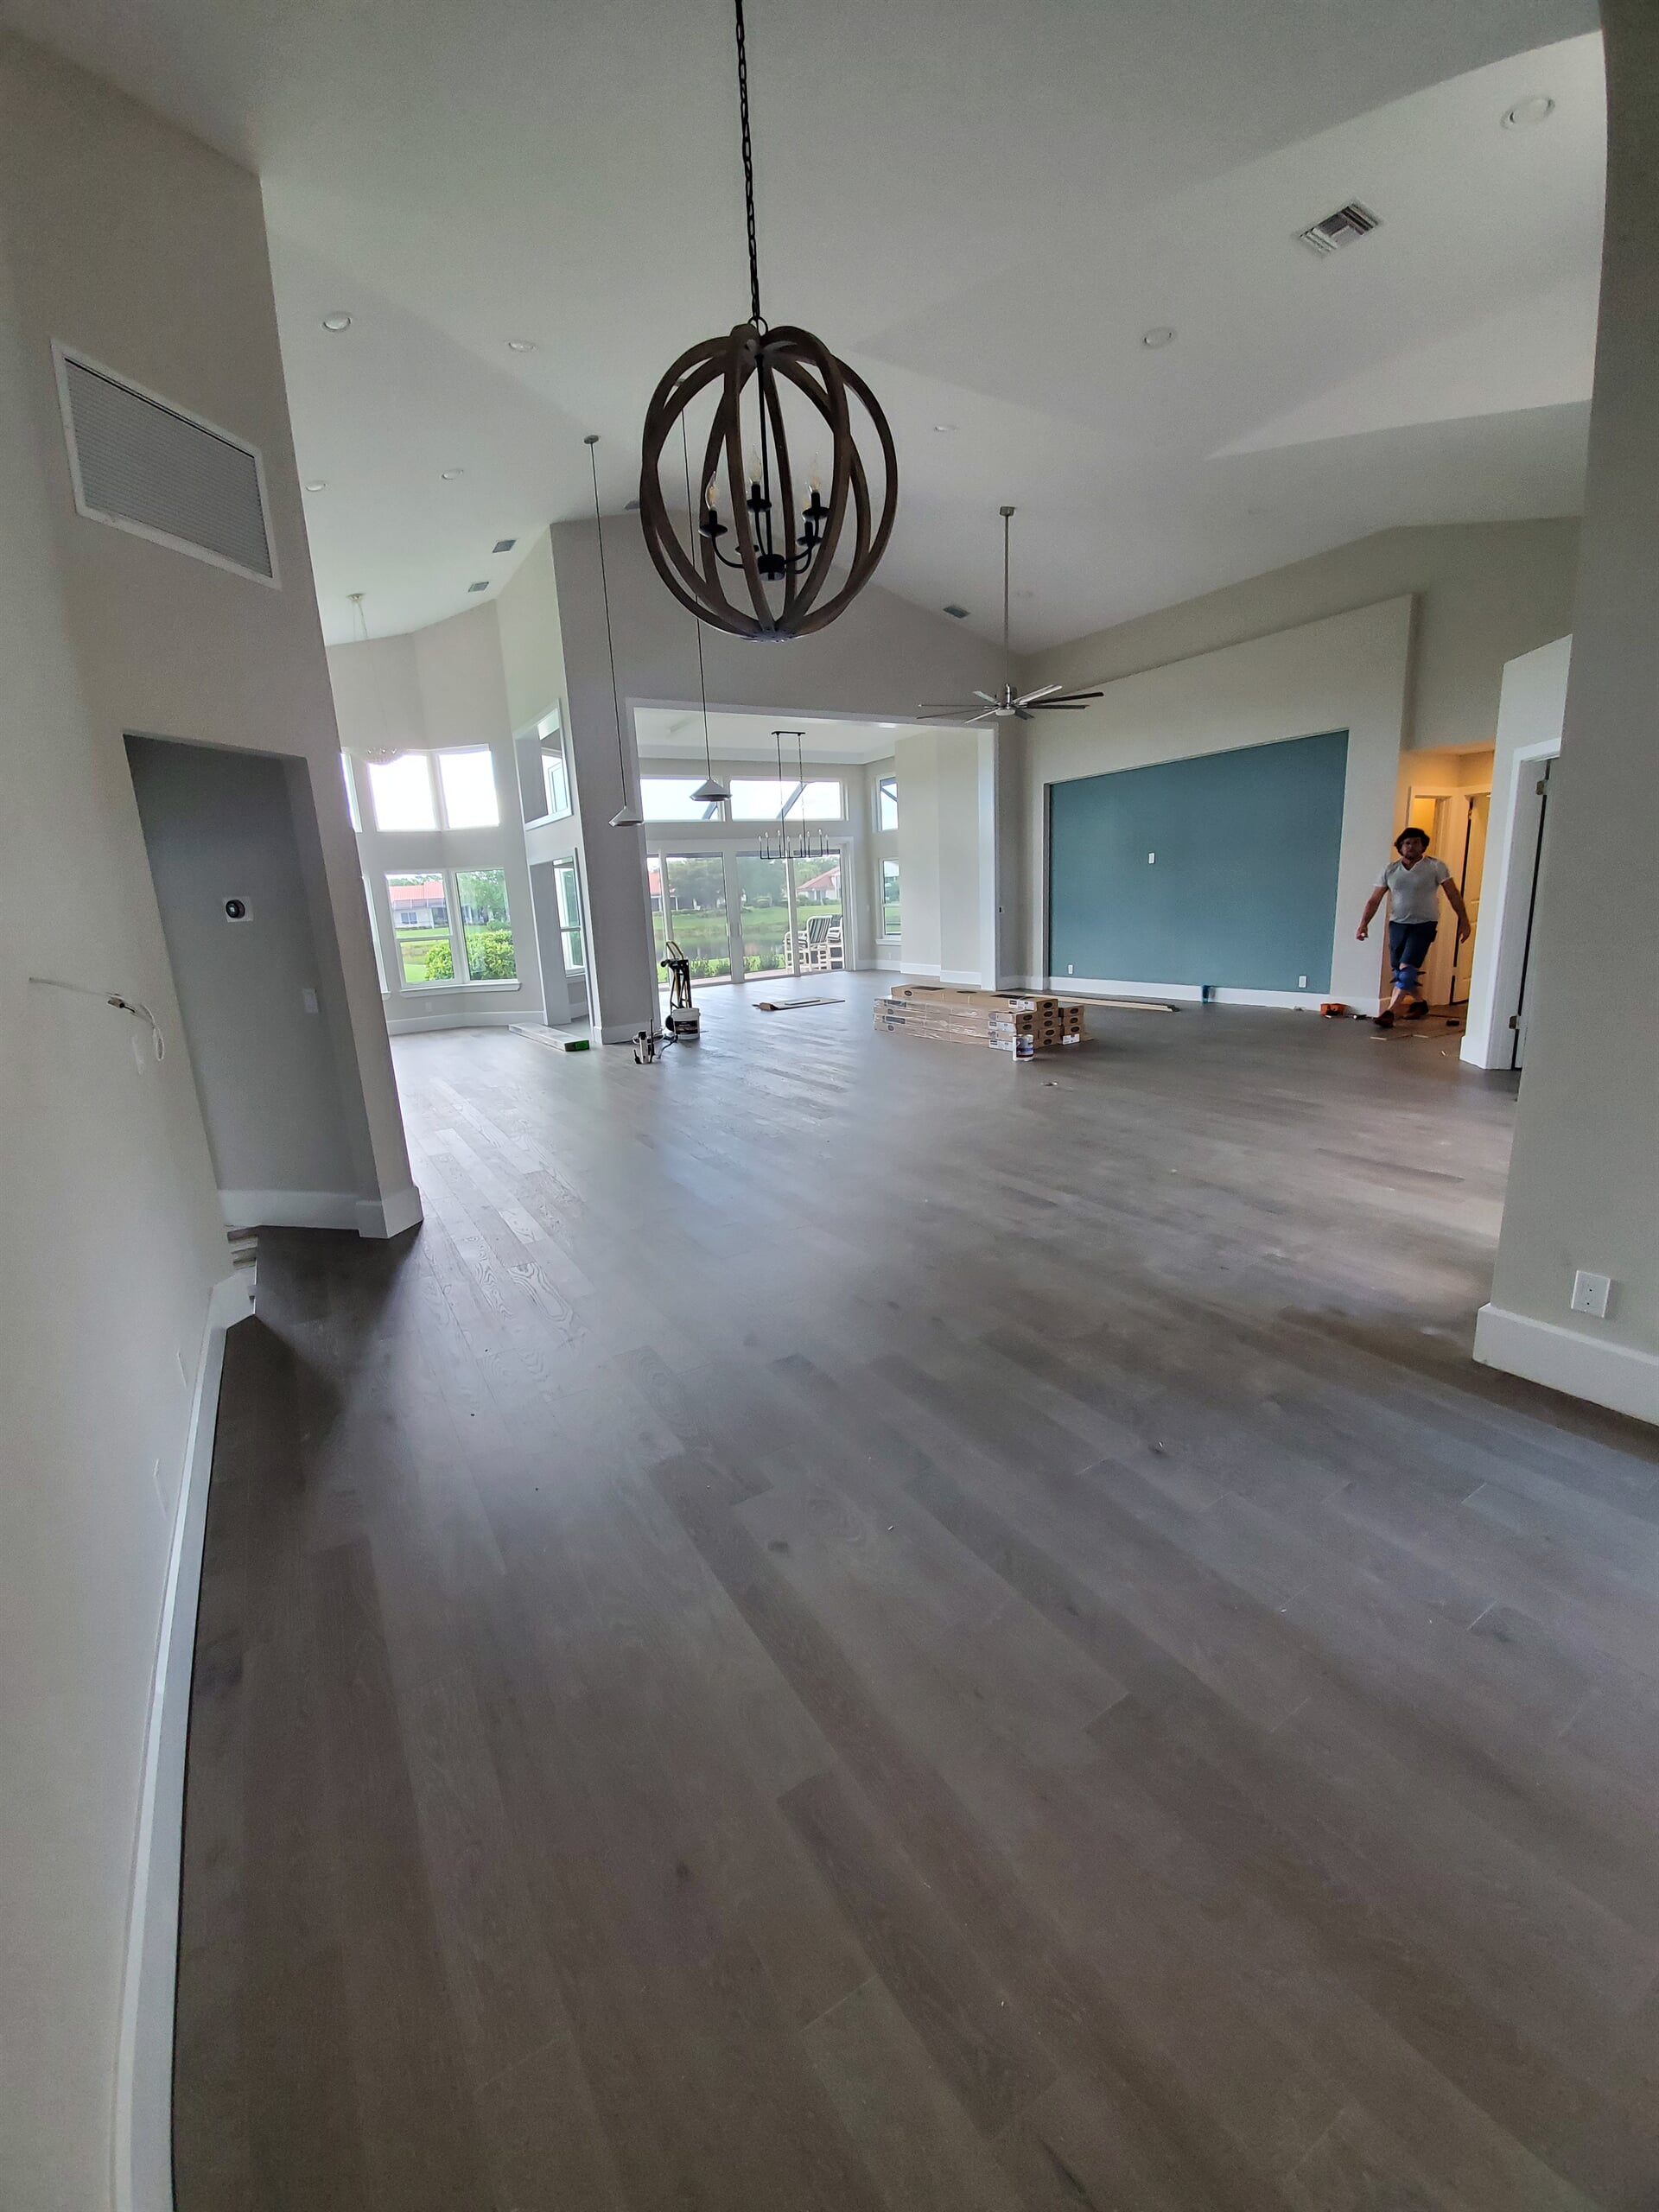 Mirage wood floors in Harbour ridge after